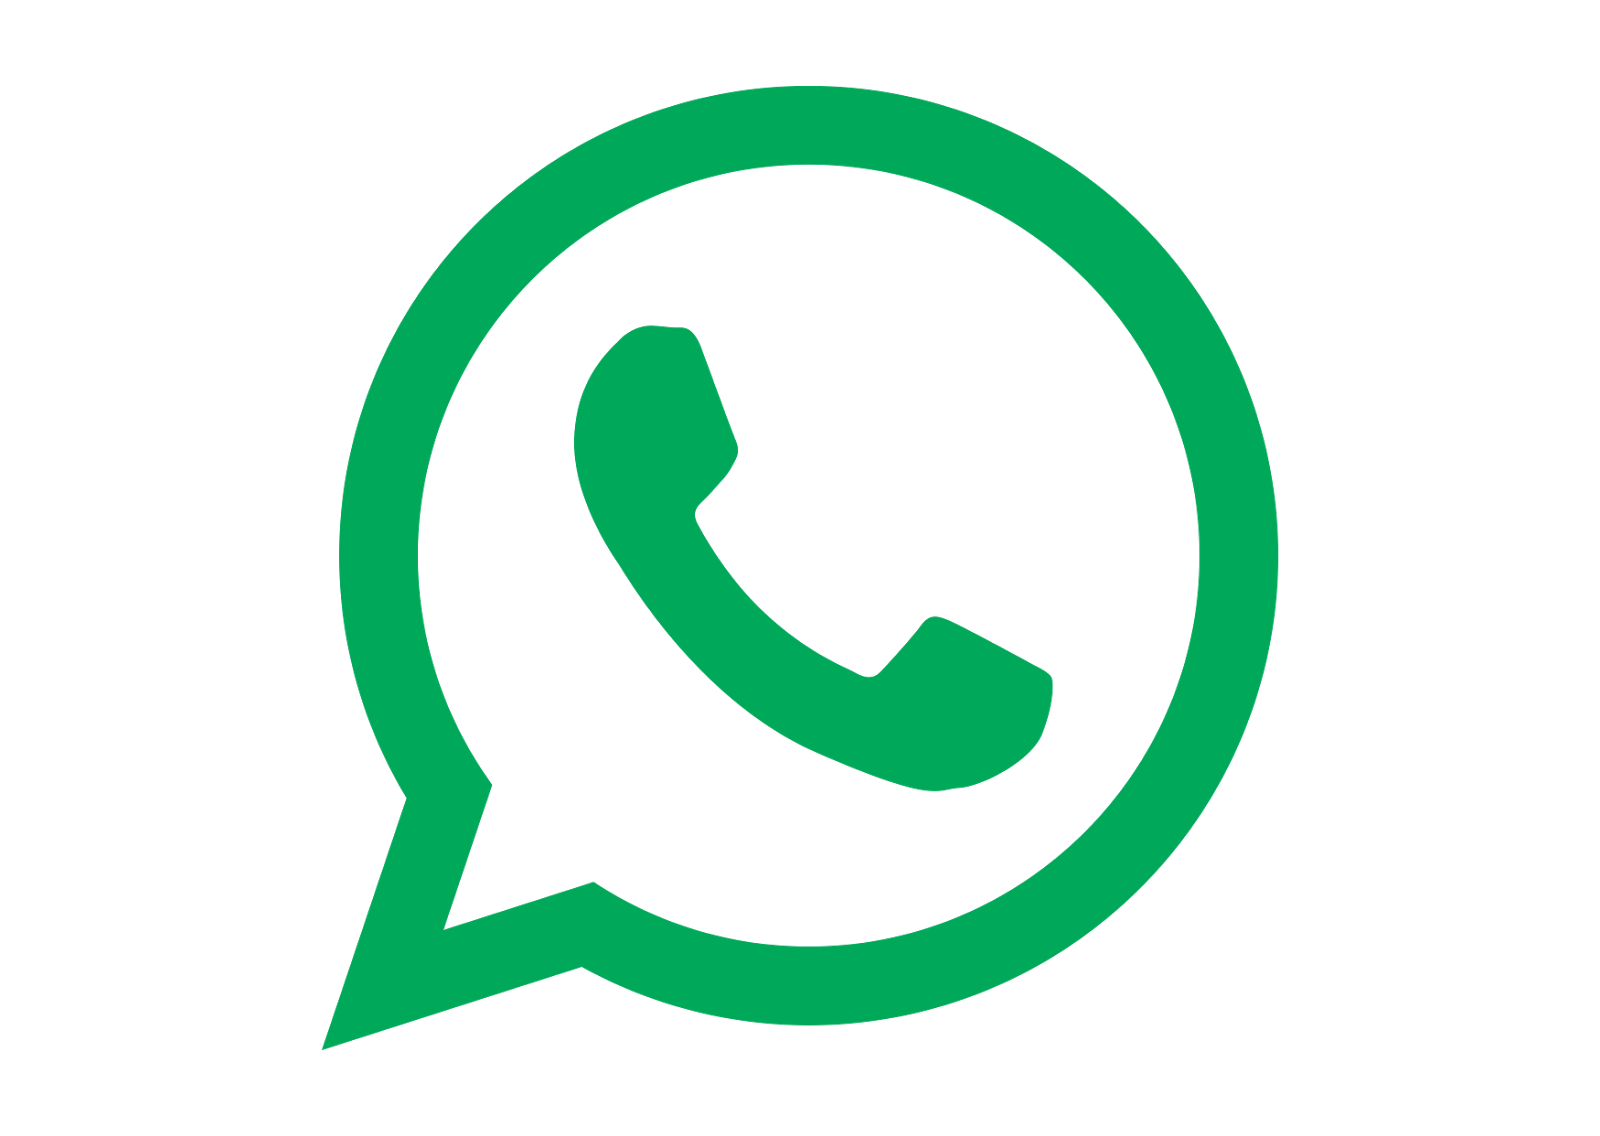 whatsapp logo light green png #2259